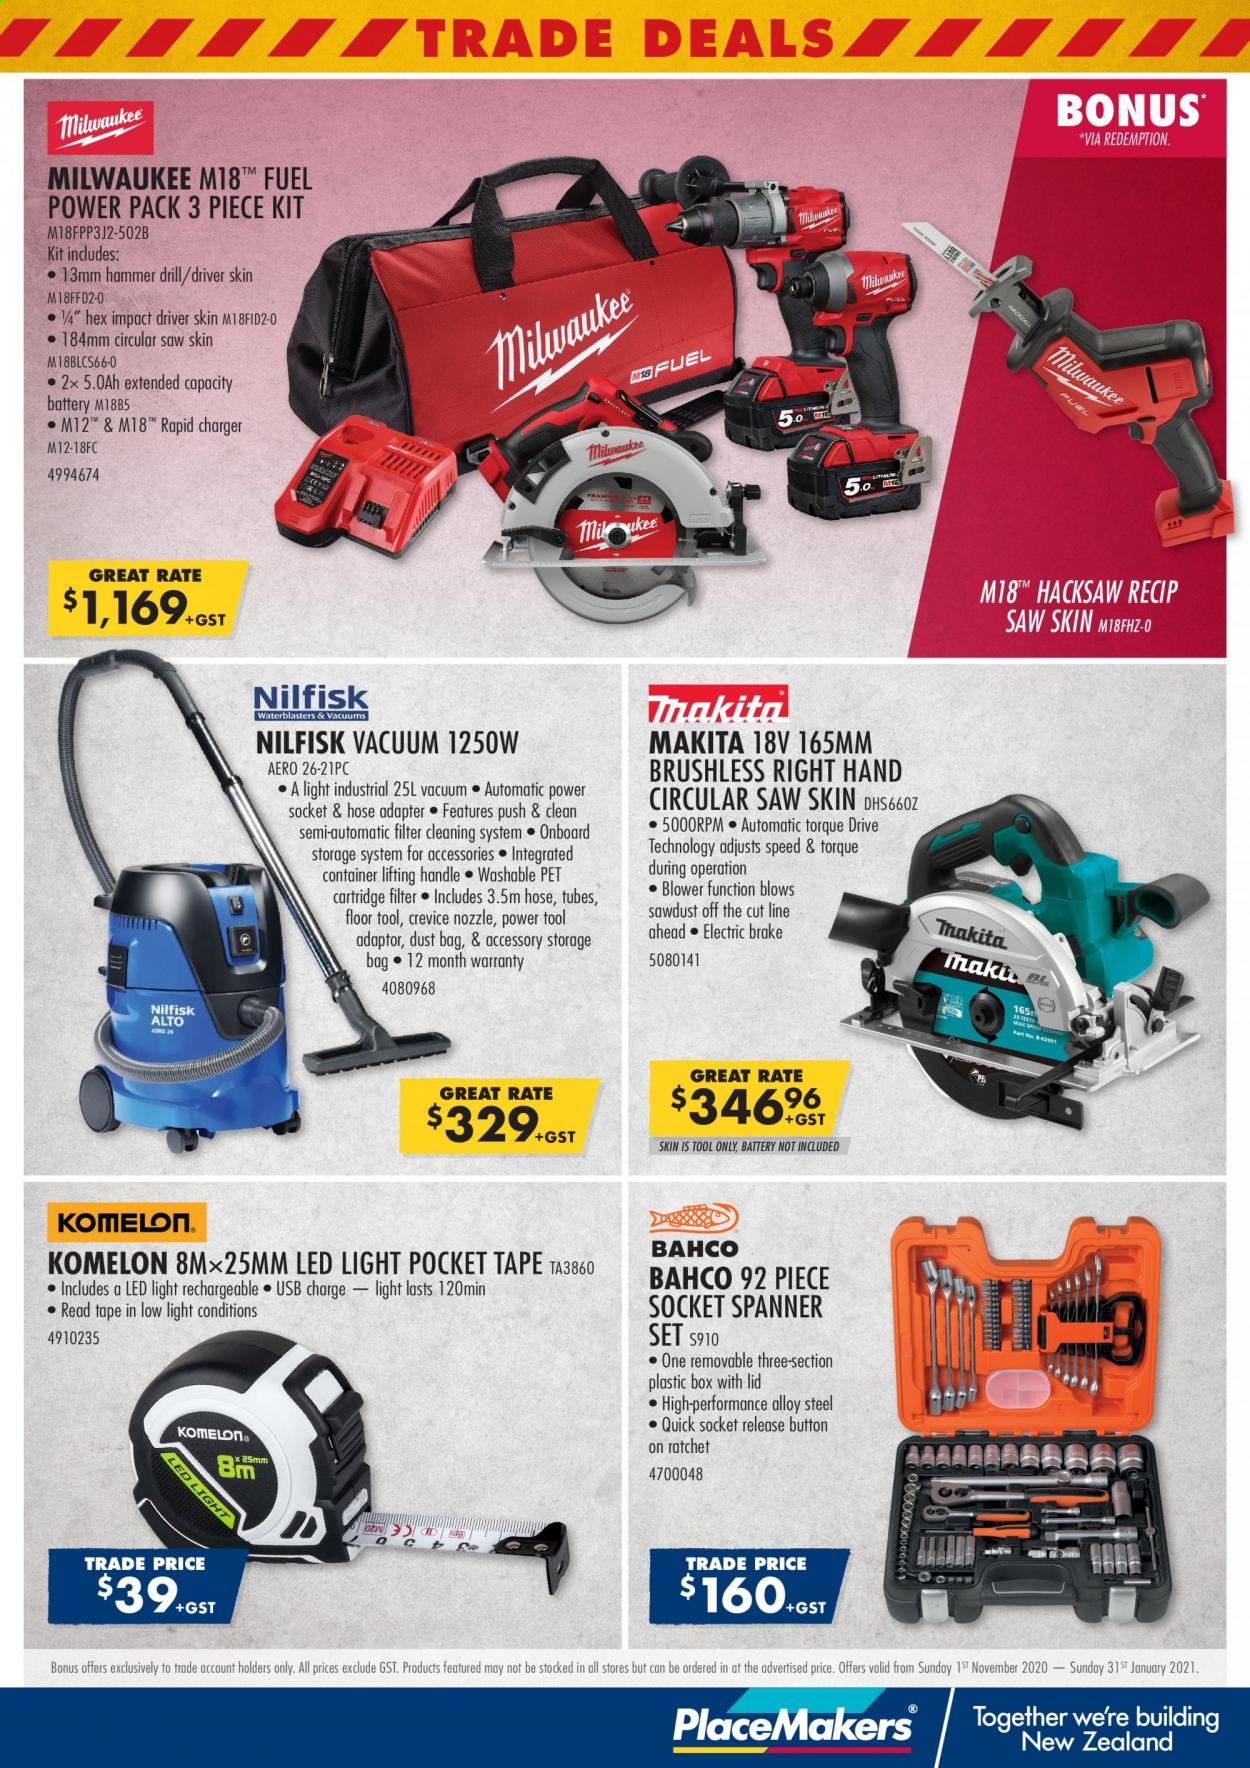 PlaceMakers mailer - 01.11.2020 - 31.01.2021 - Sales products - battery, container, drill, fuel, led light, lid, tape, usb, vacuum, impact driver, pet, charger, hammer, milwaukee, cartridge, spanner, circular saw, saw, blower, hose, storage bag, tools, led. Page 1.